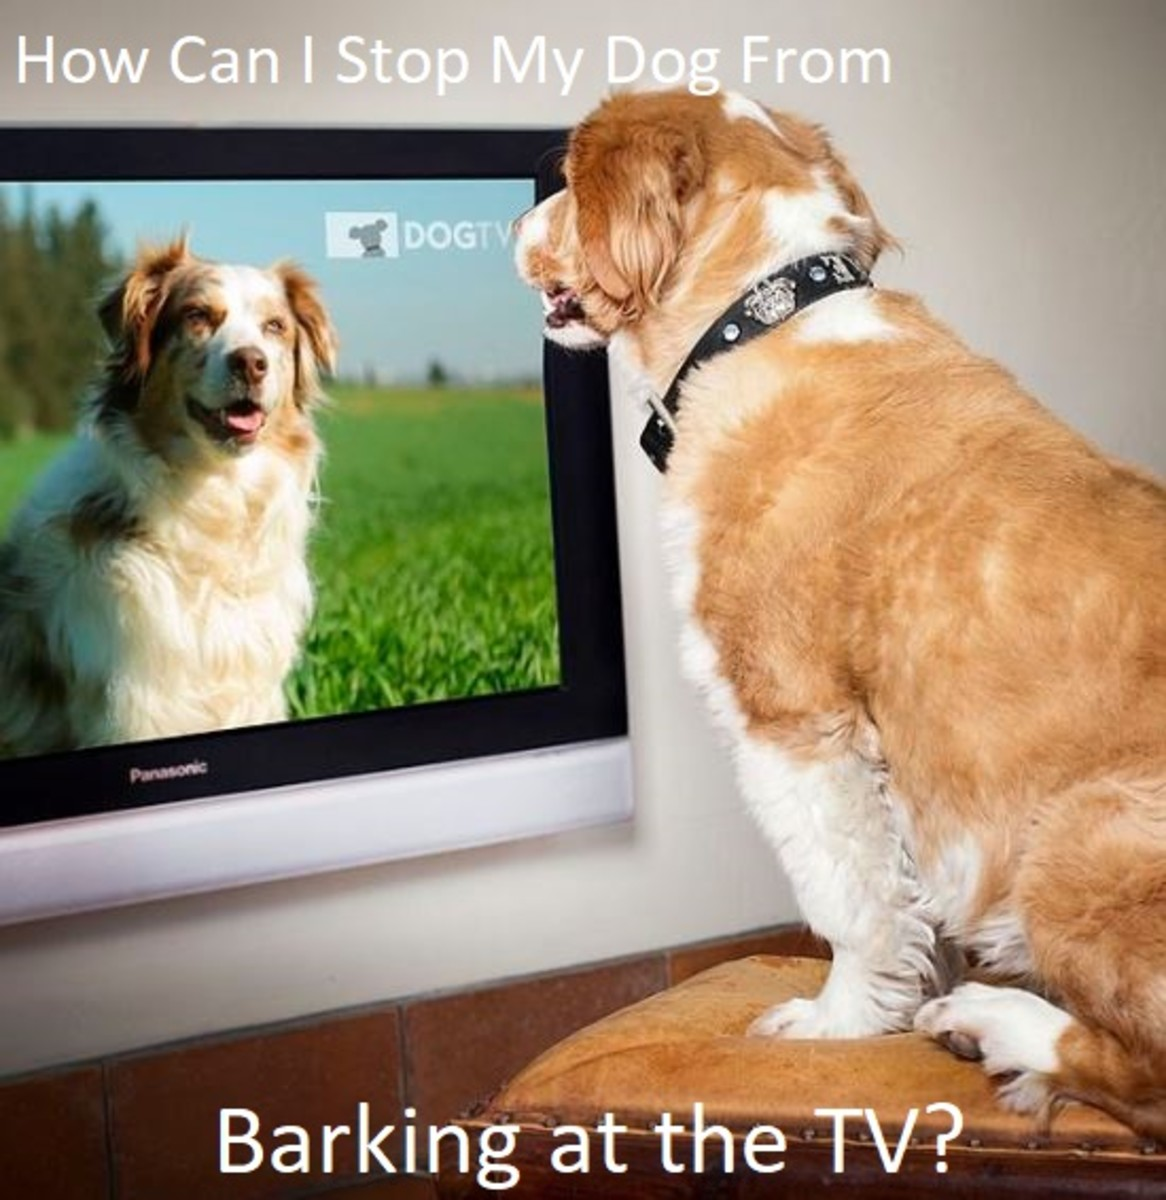 How to Stop Your Dog From Barking at the TV (Proven Techniques)